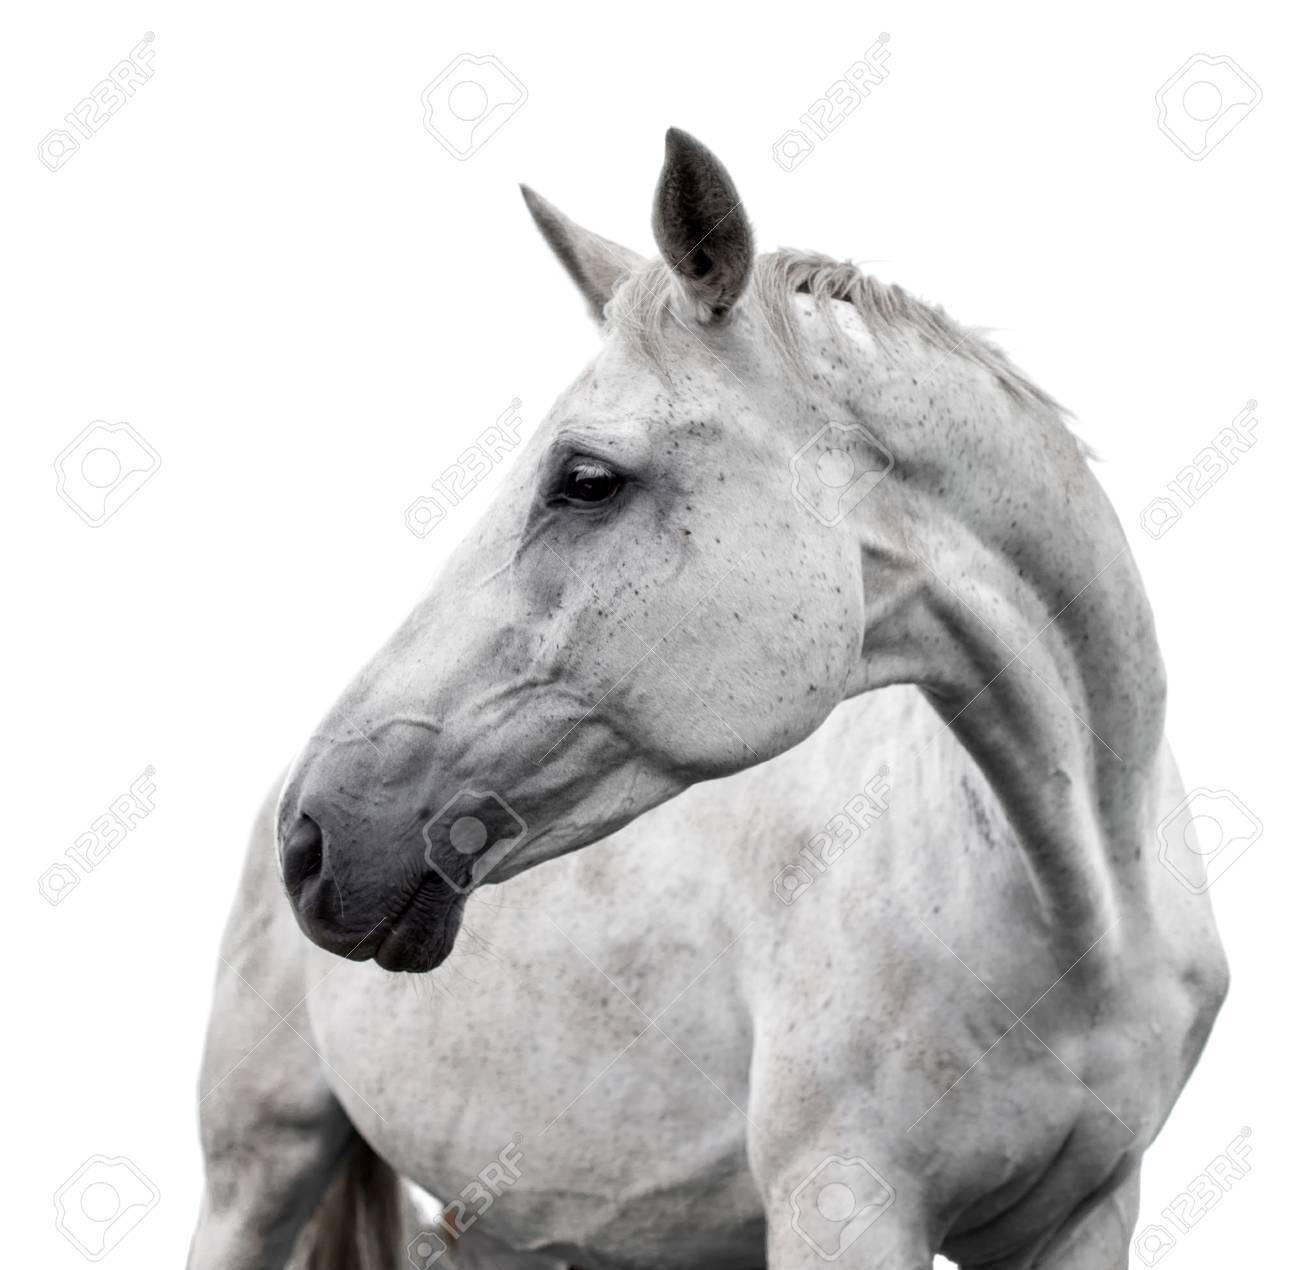 White Horse On White Background Stock Photo Picture And Royalty Free Image Image 81778688